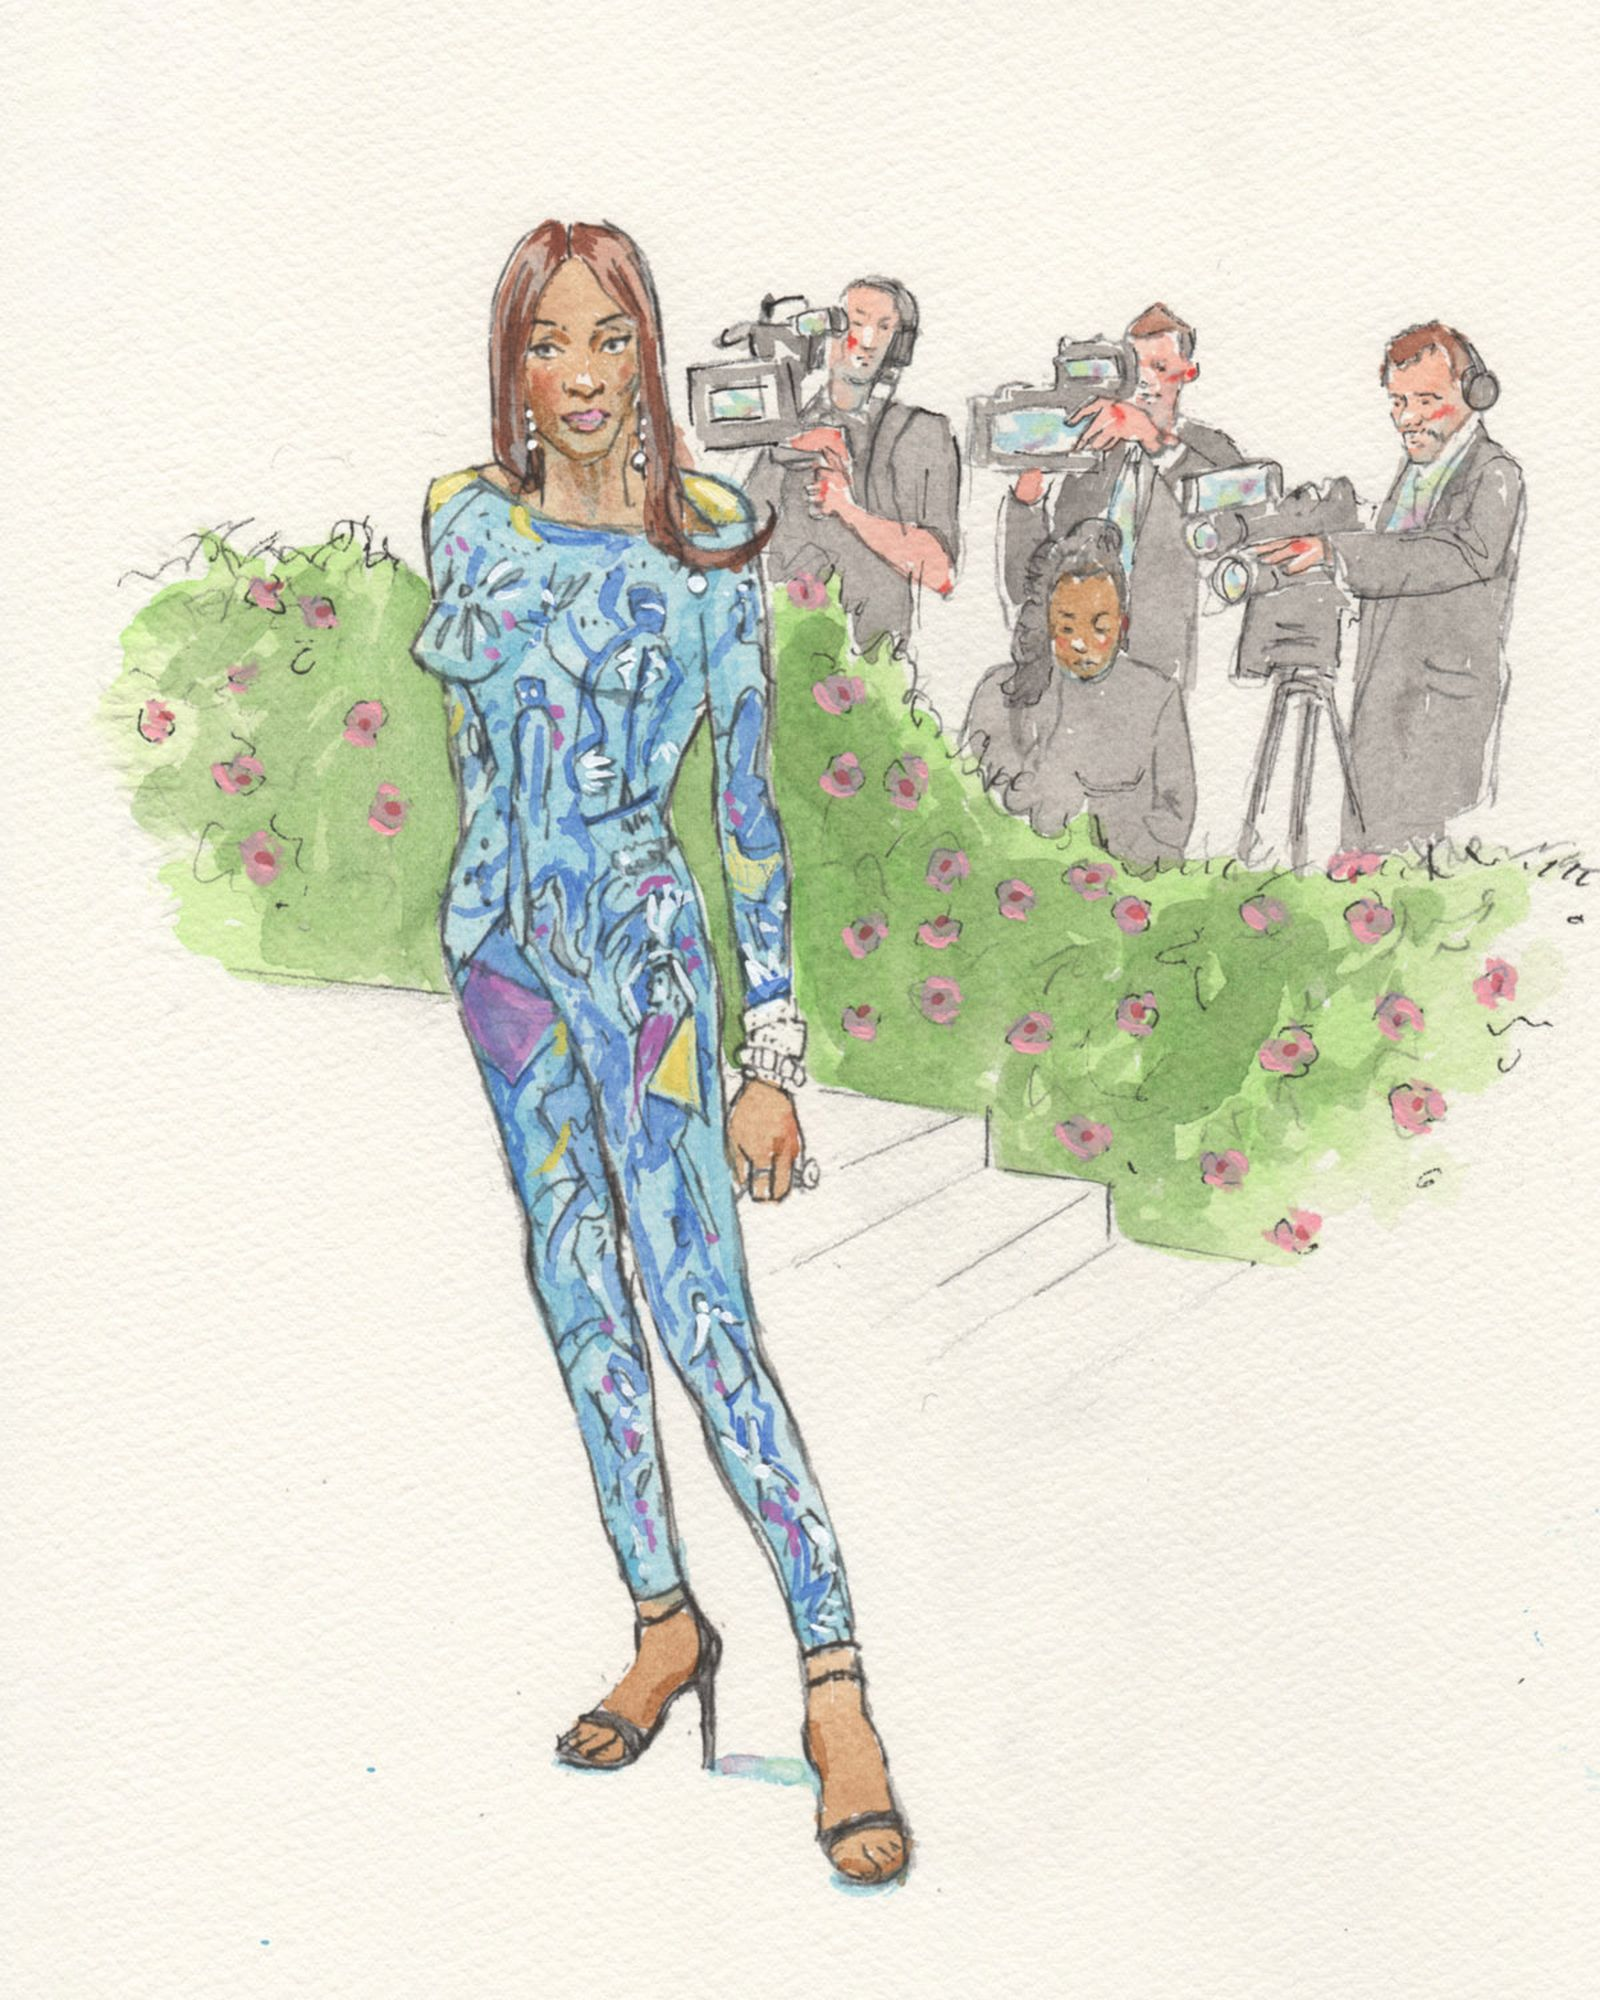 courtroom-sketch-artist-draws-fantasty-met-gala-fits-never-happened-Naomi-Campbell